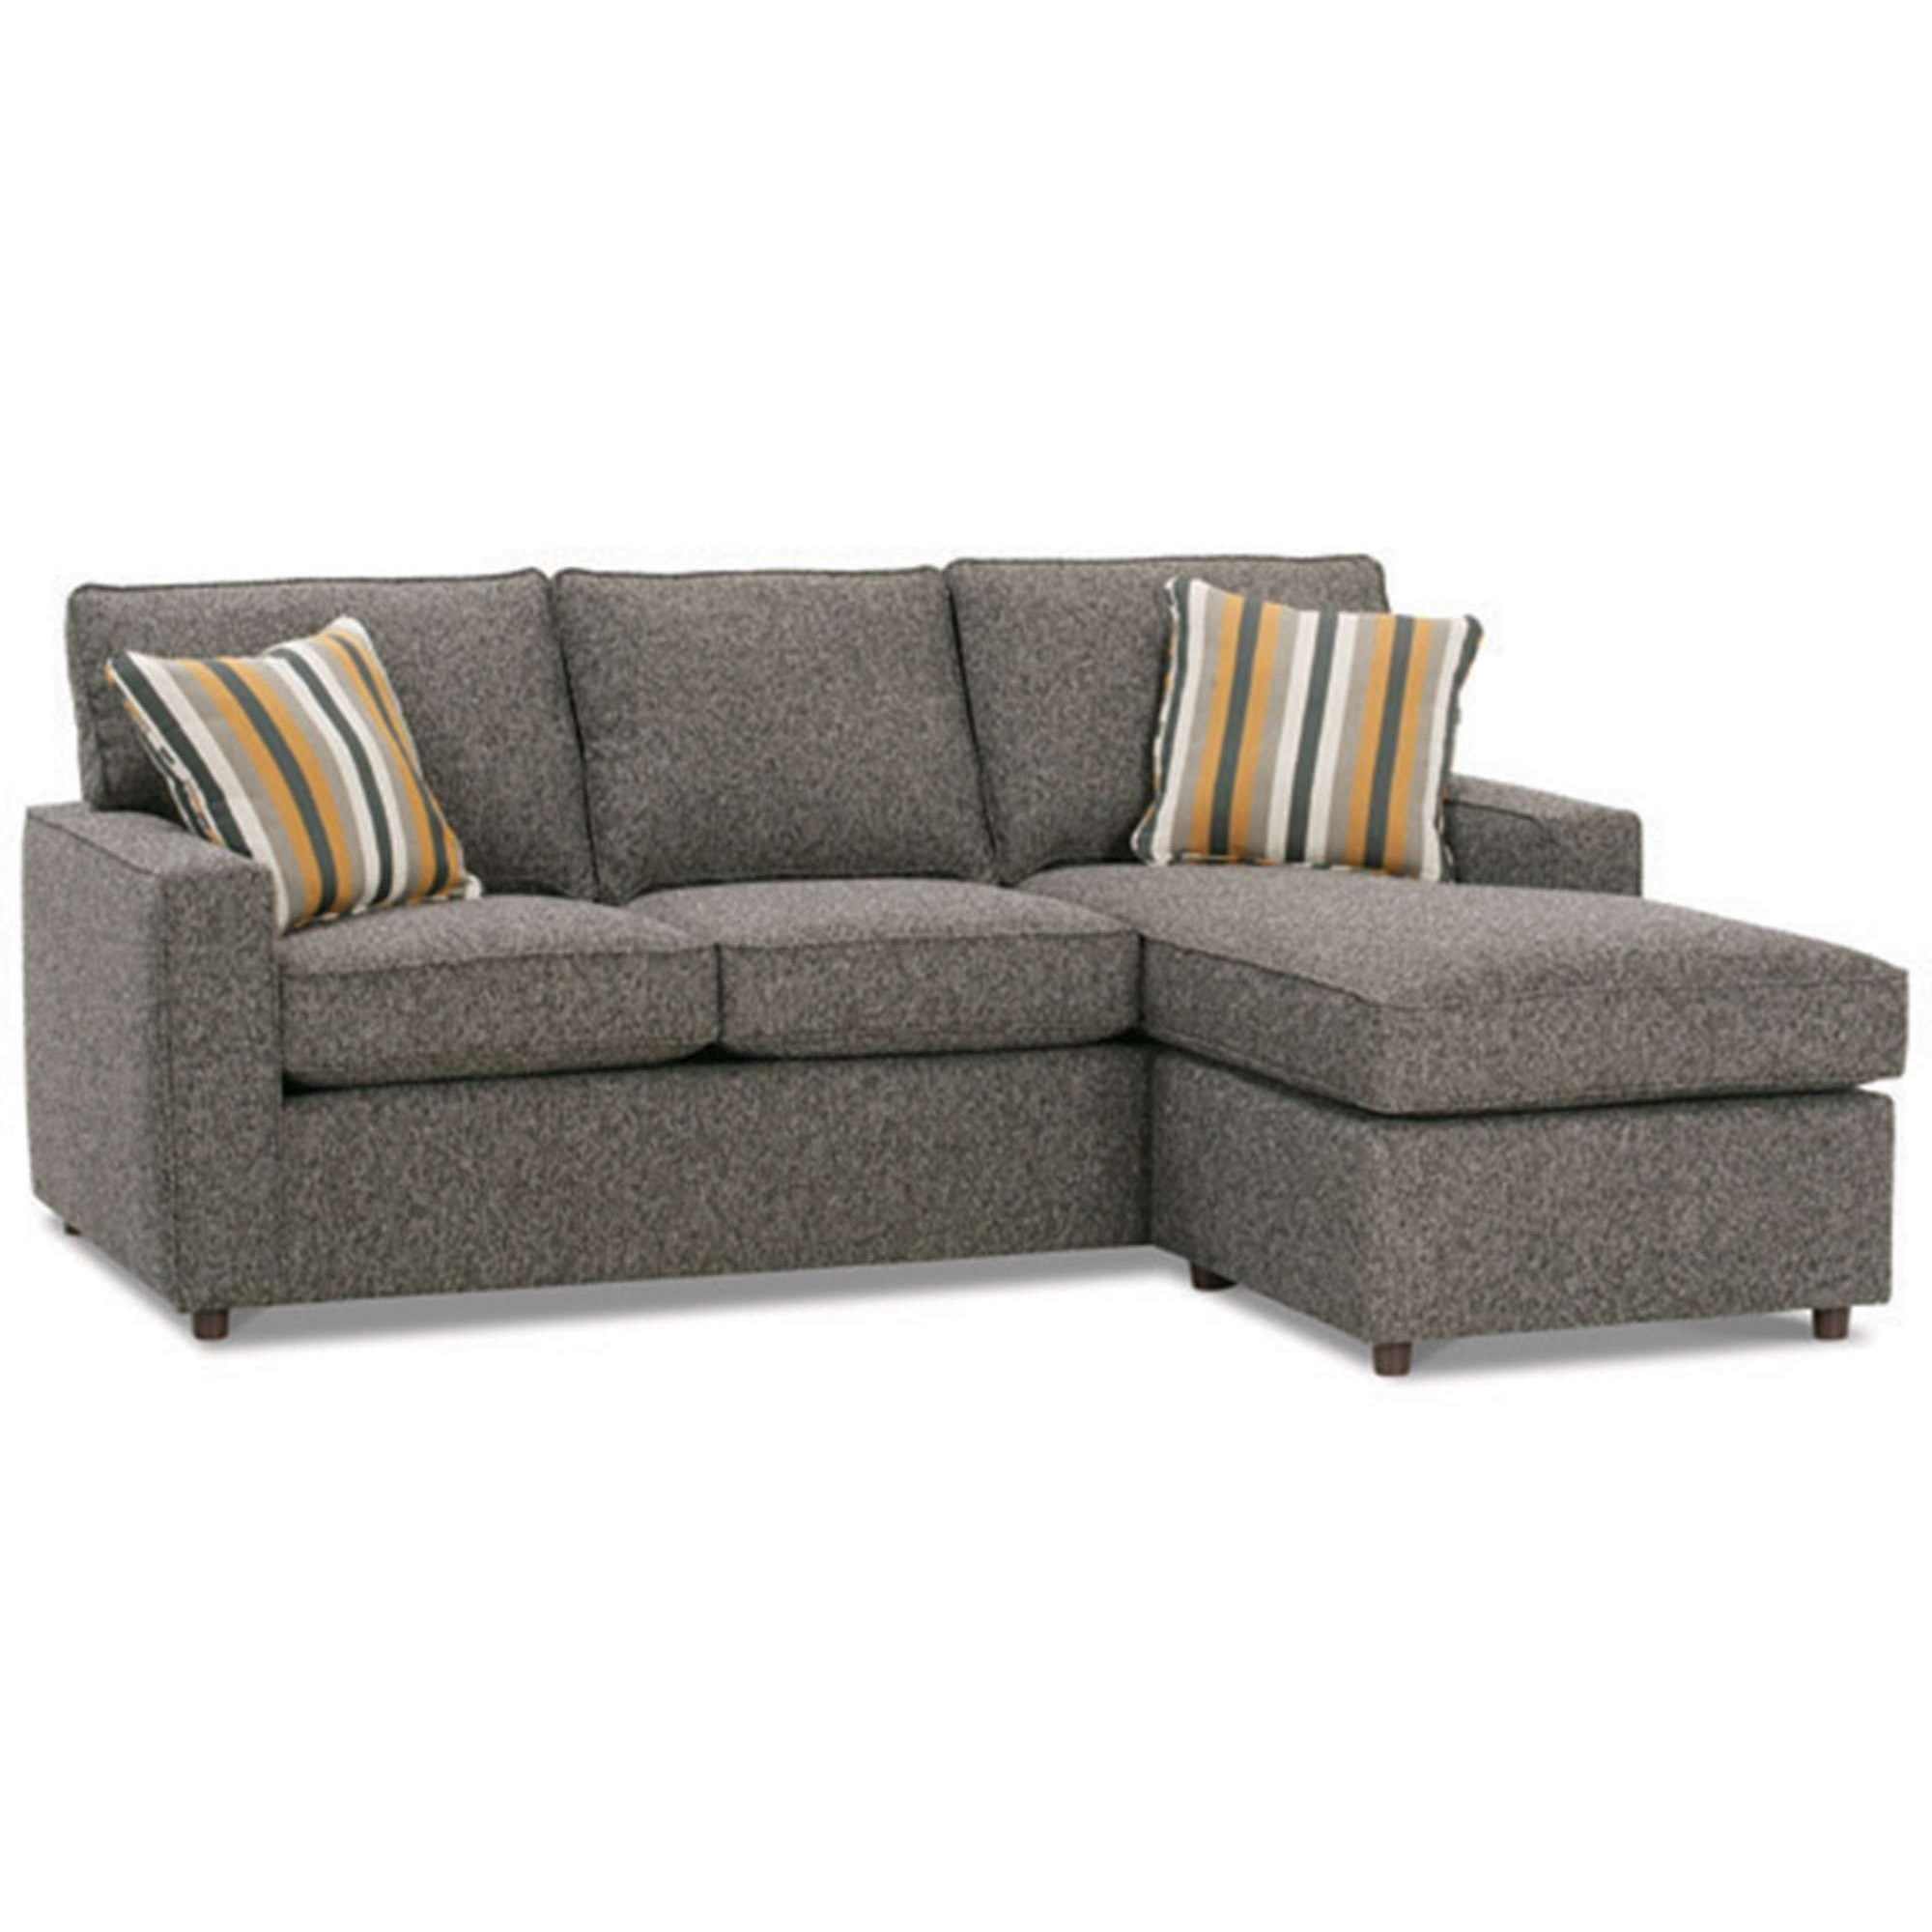 Monaco Transitional Sofa with Chaise by Rowe at Baer's Furniture